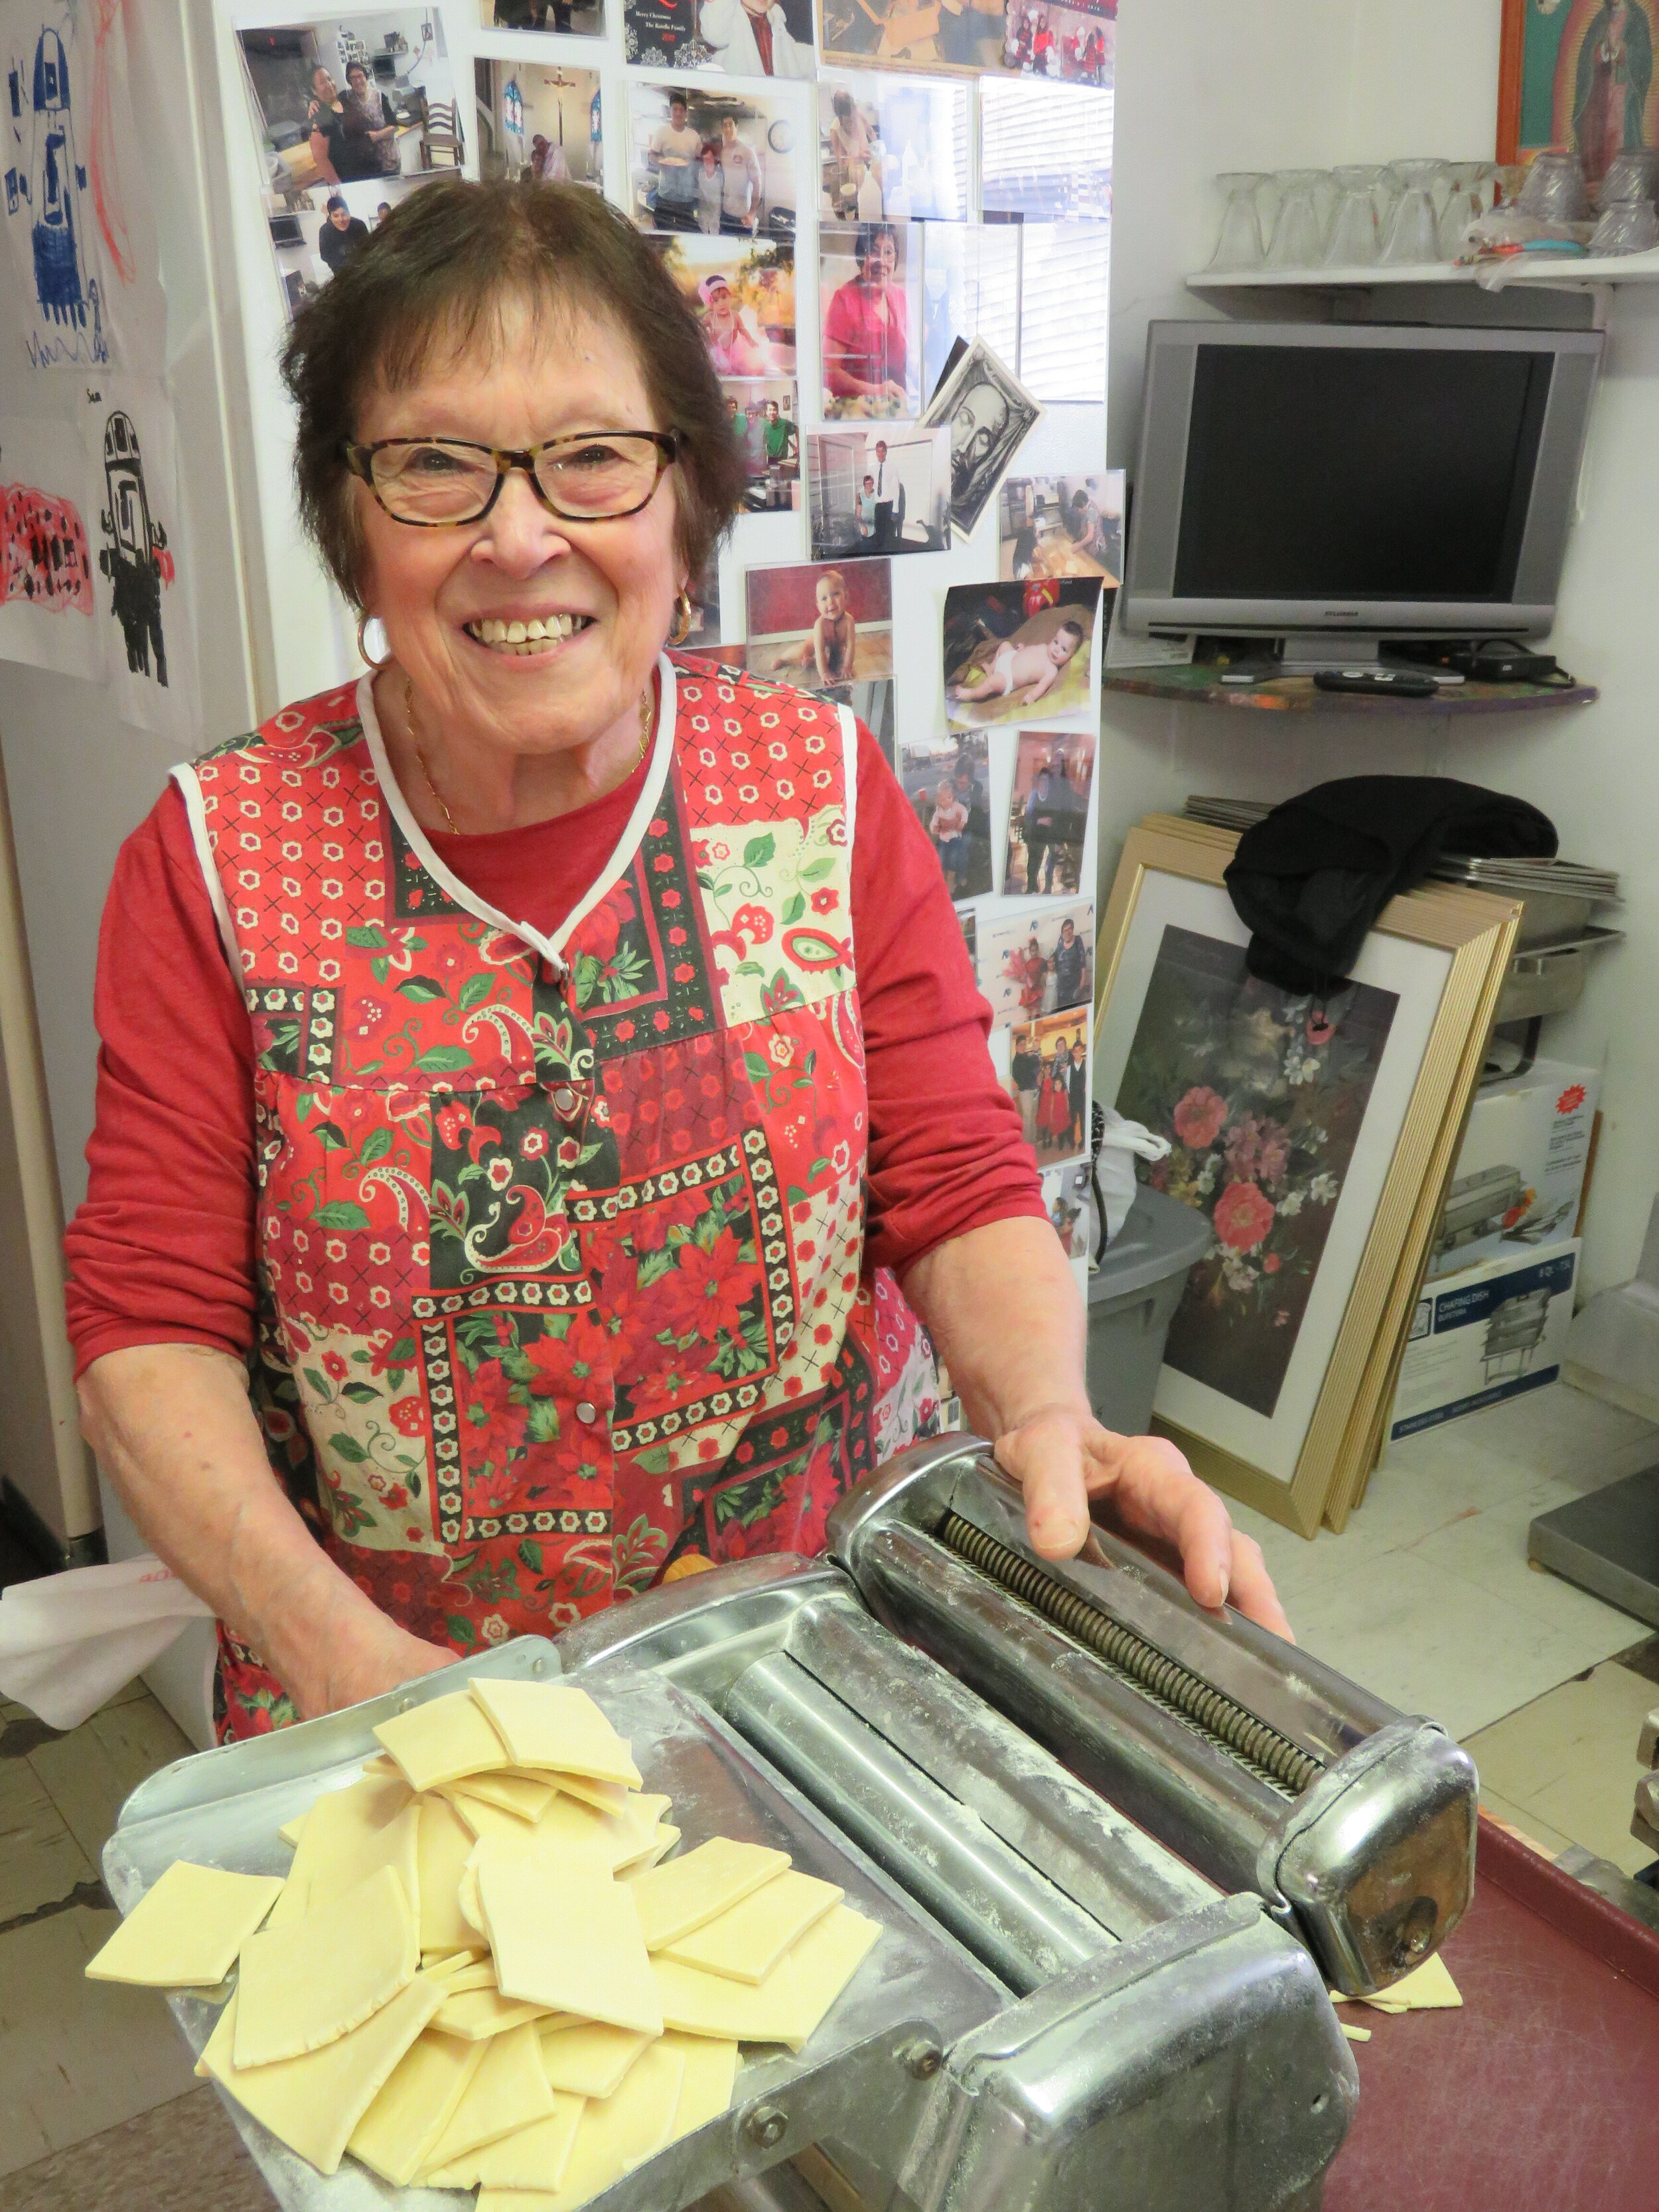 At Malara's, the homemade ravioli has been produced in the same pasta maker since Caterina Malara sold them out of her home as a young immigrant widow with four children to support. Photo courtesy of Lisa and Tim Trudell.